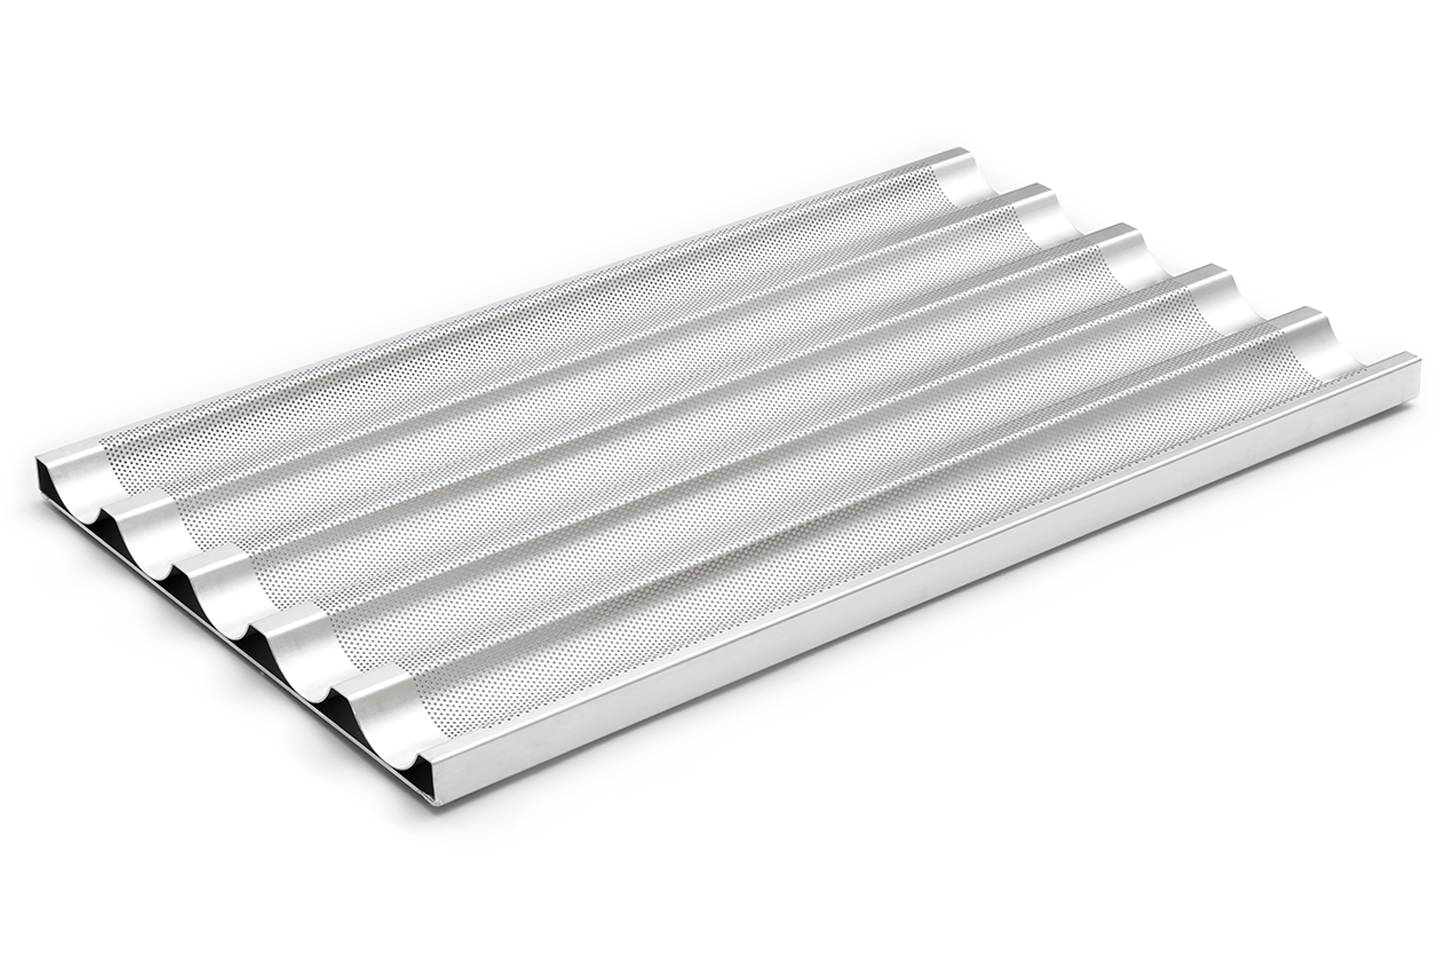 5 CHANNEL BAGUETTE TRAY AMERICOAT® COATING